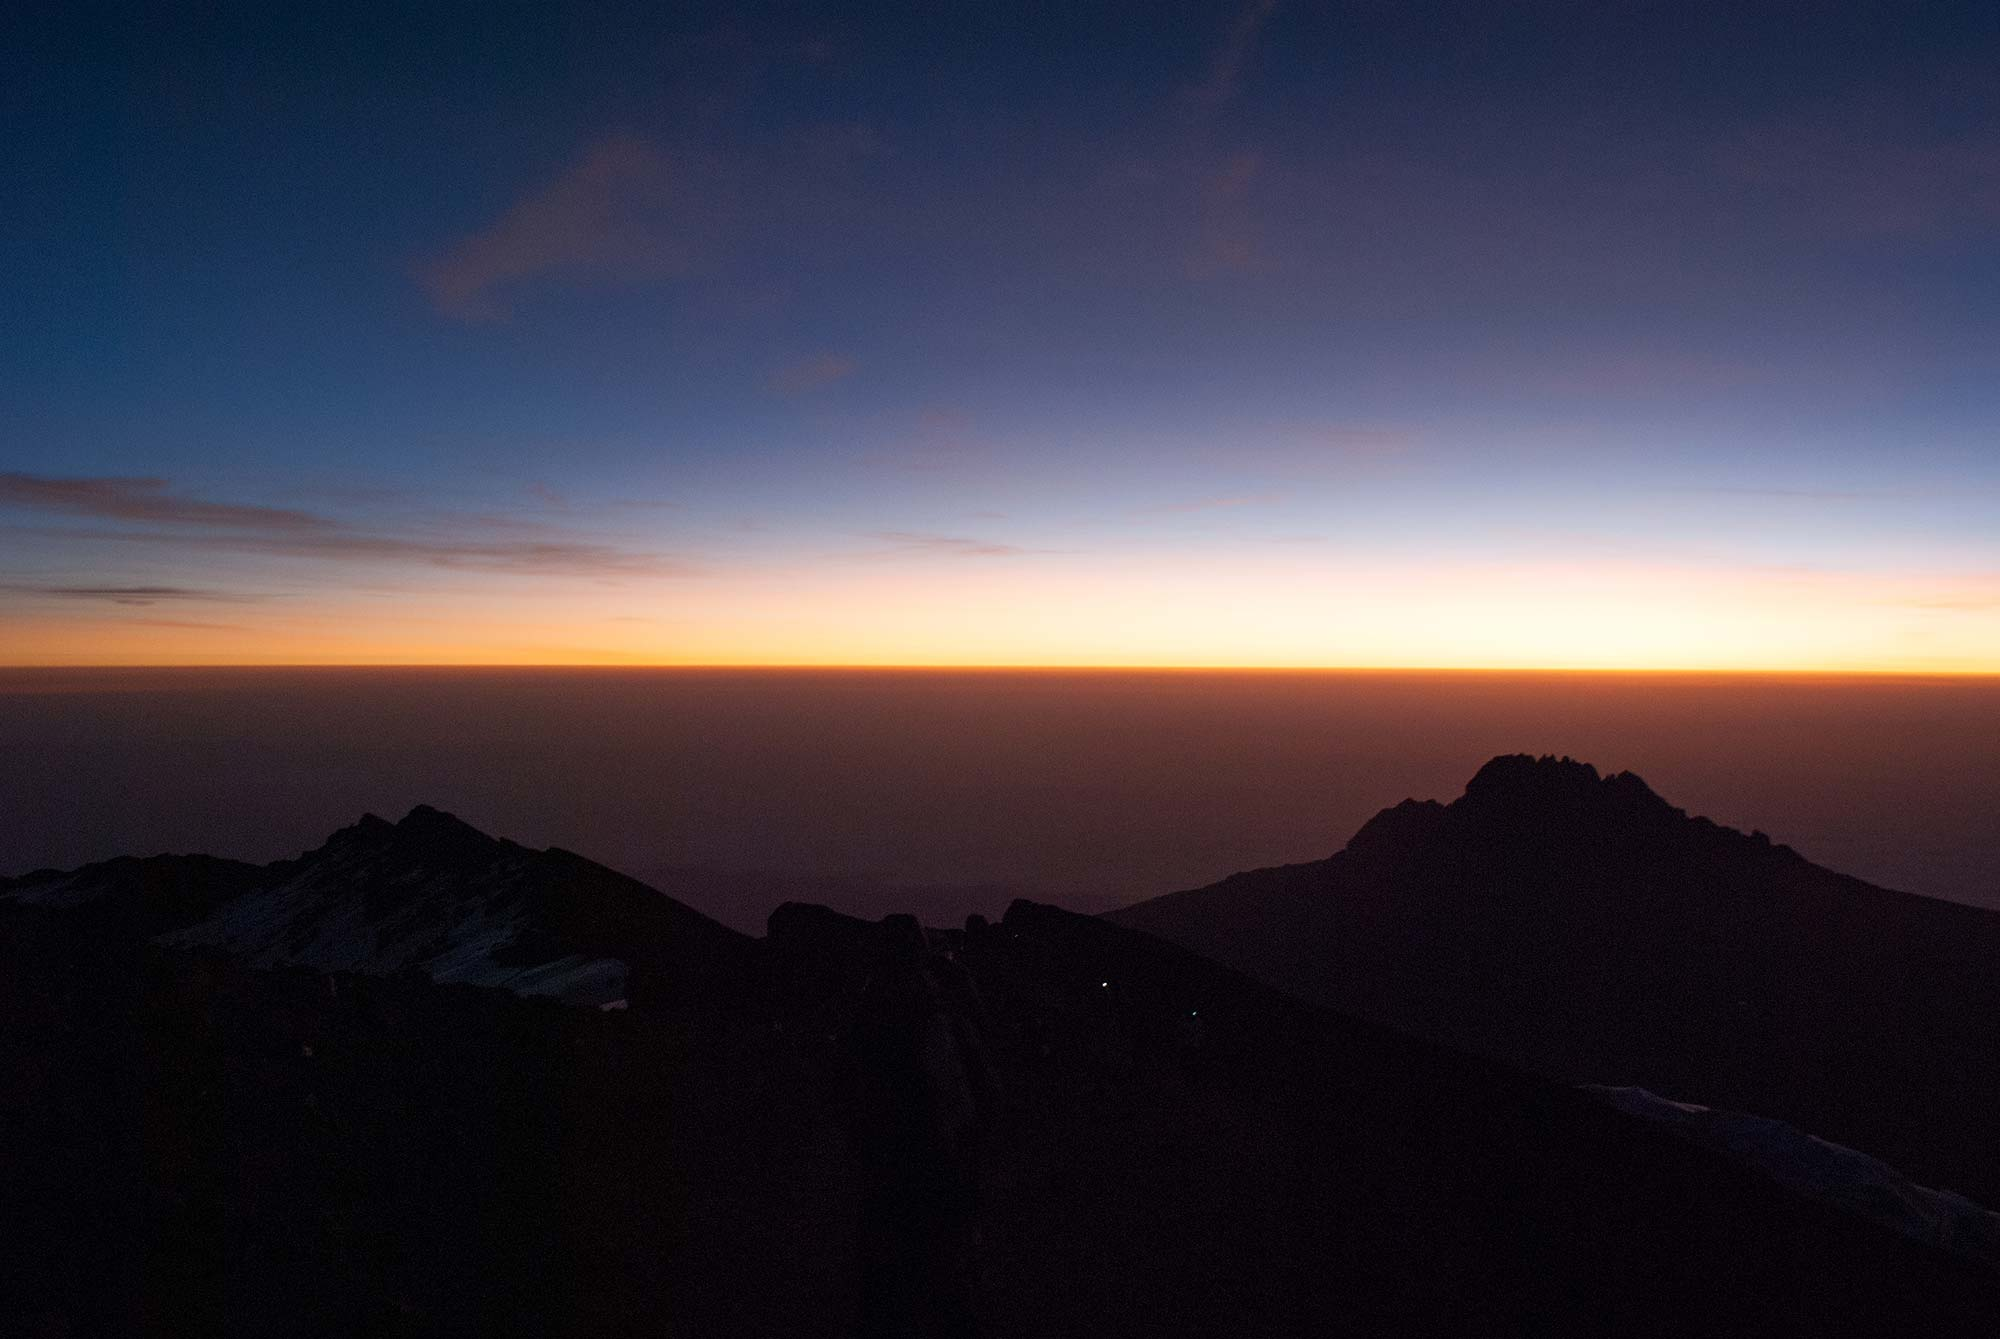 Looking East toward Mawenzi, Kilimanjaro's youngest of its three peaks. The headlamps of two climbers are visible on the mountain.